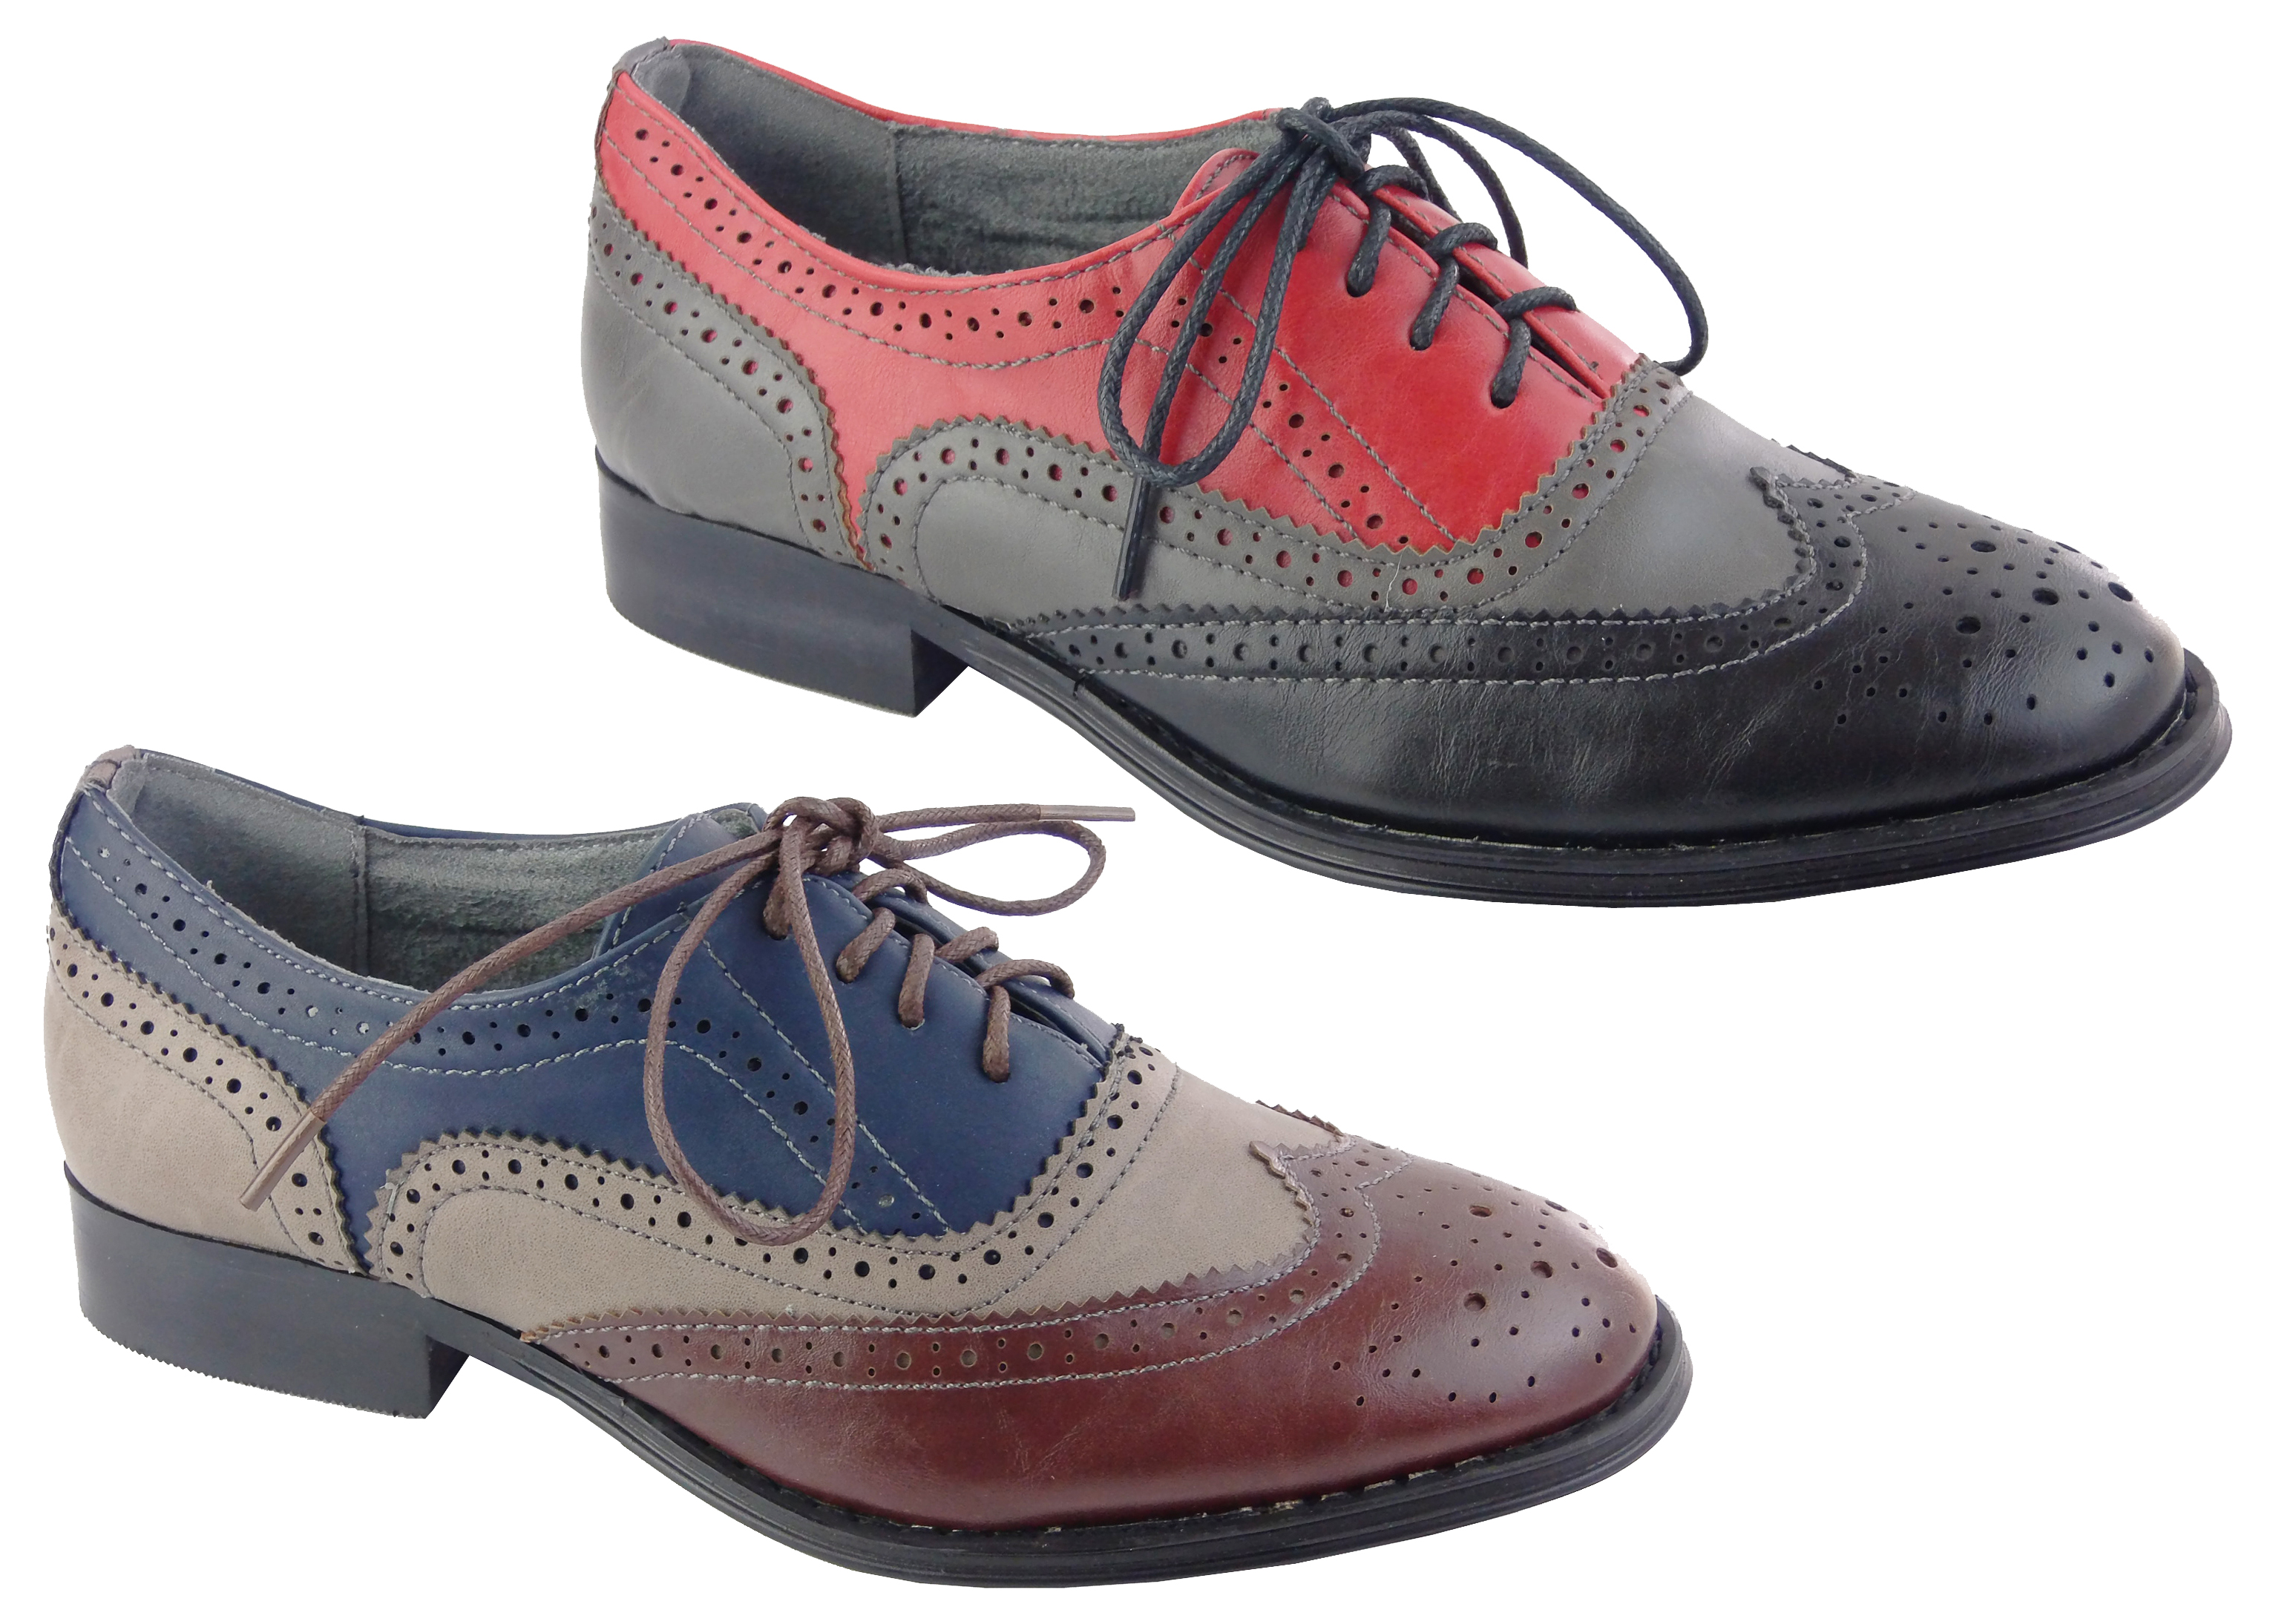 Put an androgynous spin on your look with a pair of women's brogues from our collection. Simple designs in dark tones are ideal for refining your workwear, while detailed styles featuring perforated patterns draw the eye.